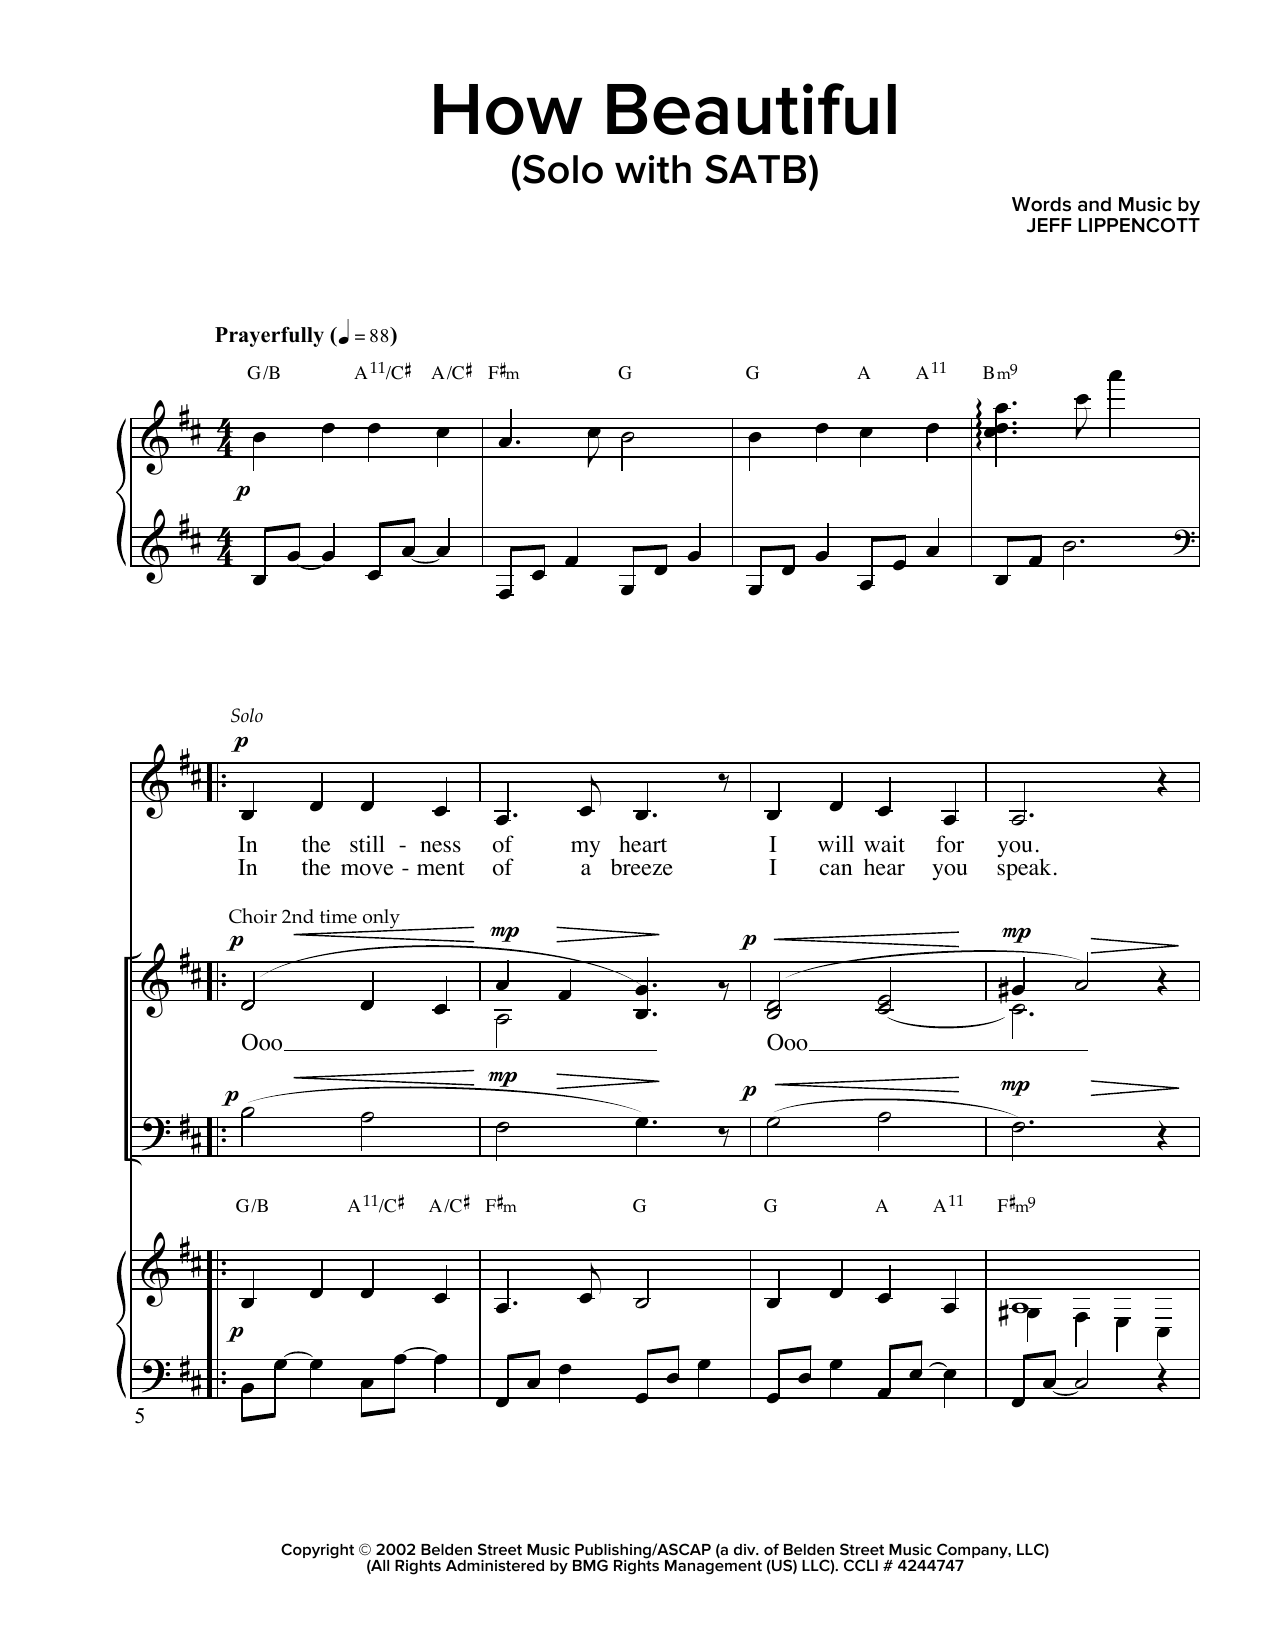 How Beautiful (SATB Choir)